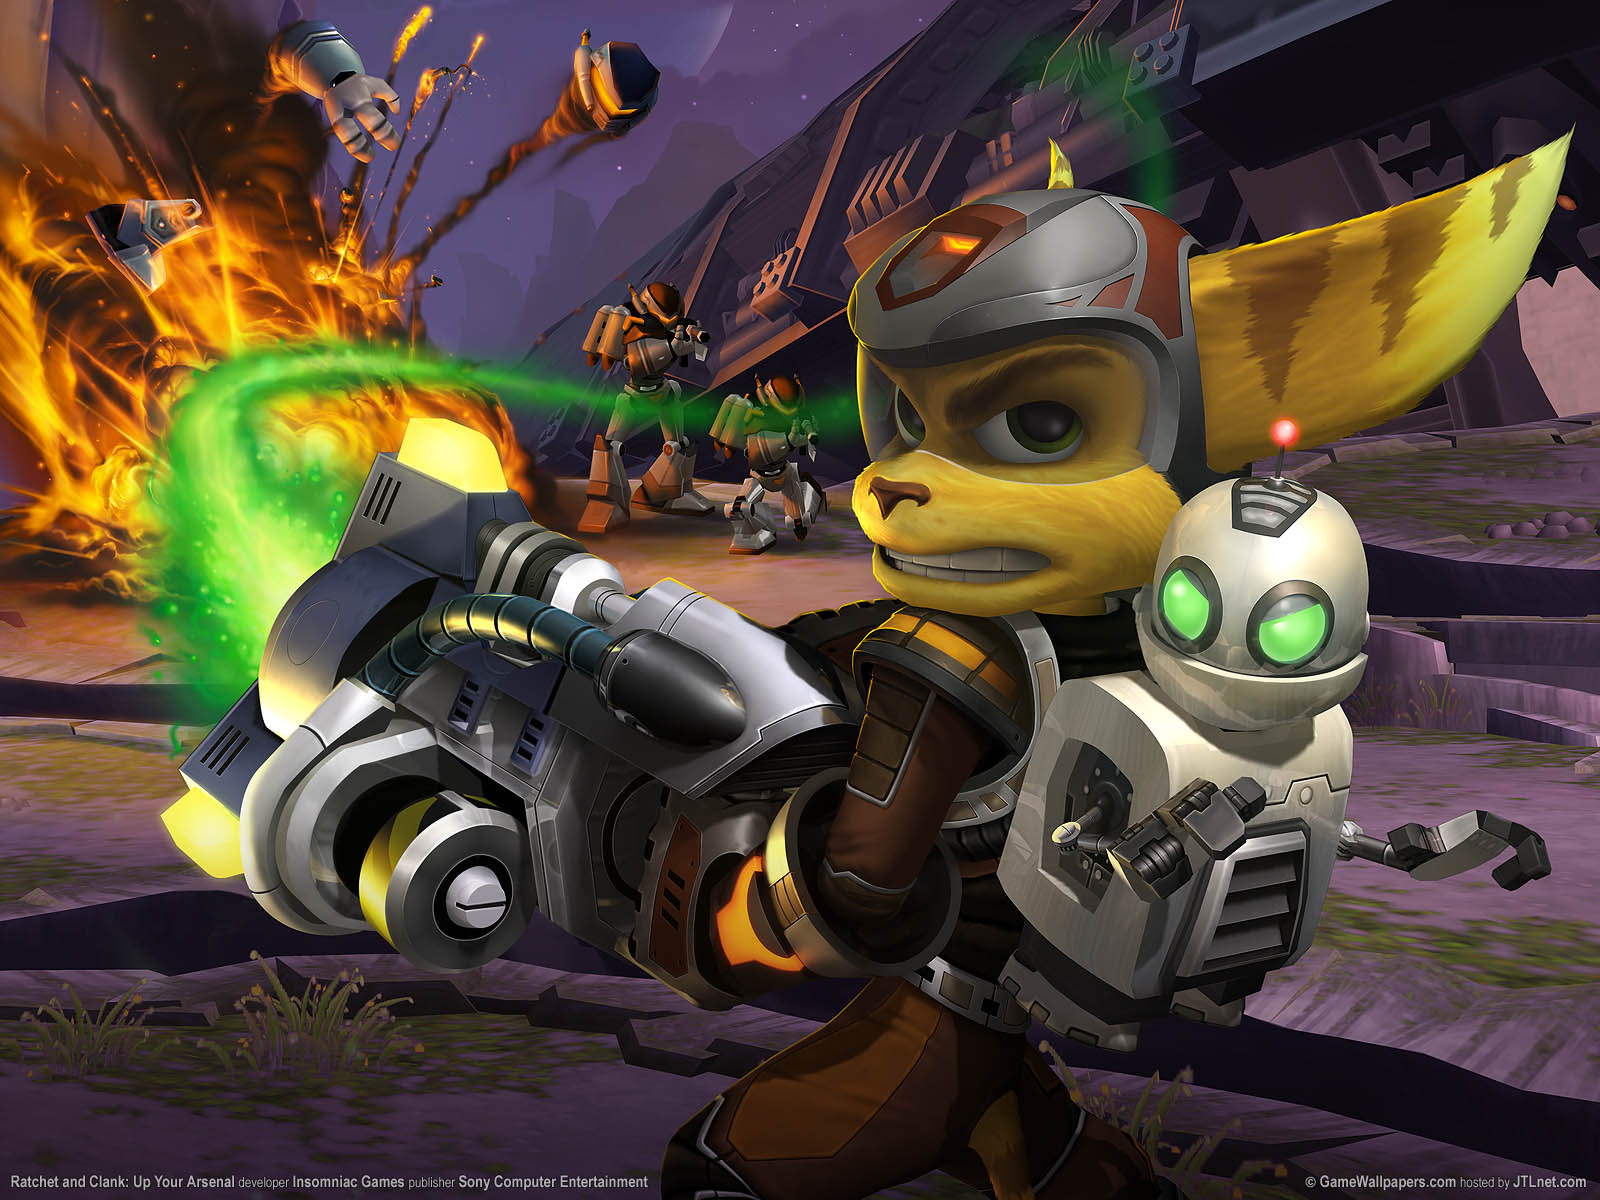 Ratchet and Clank: Up Your Arsenal Hintergrundbild 01 1600x1200